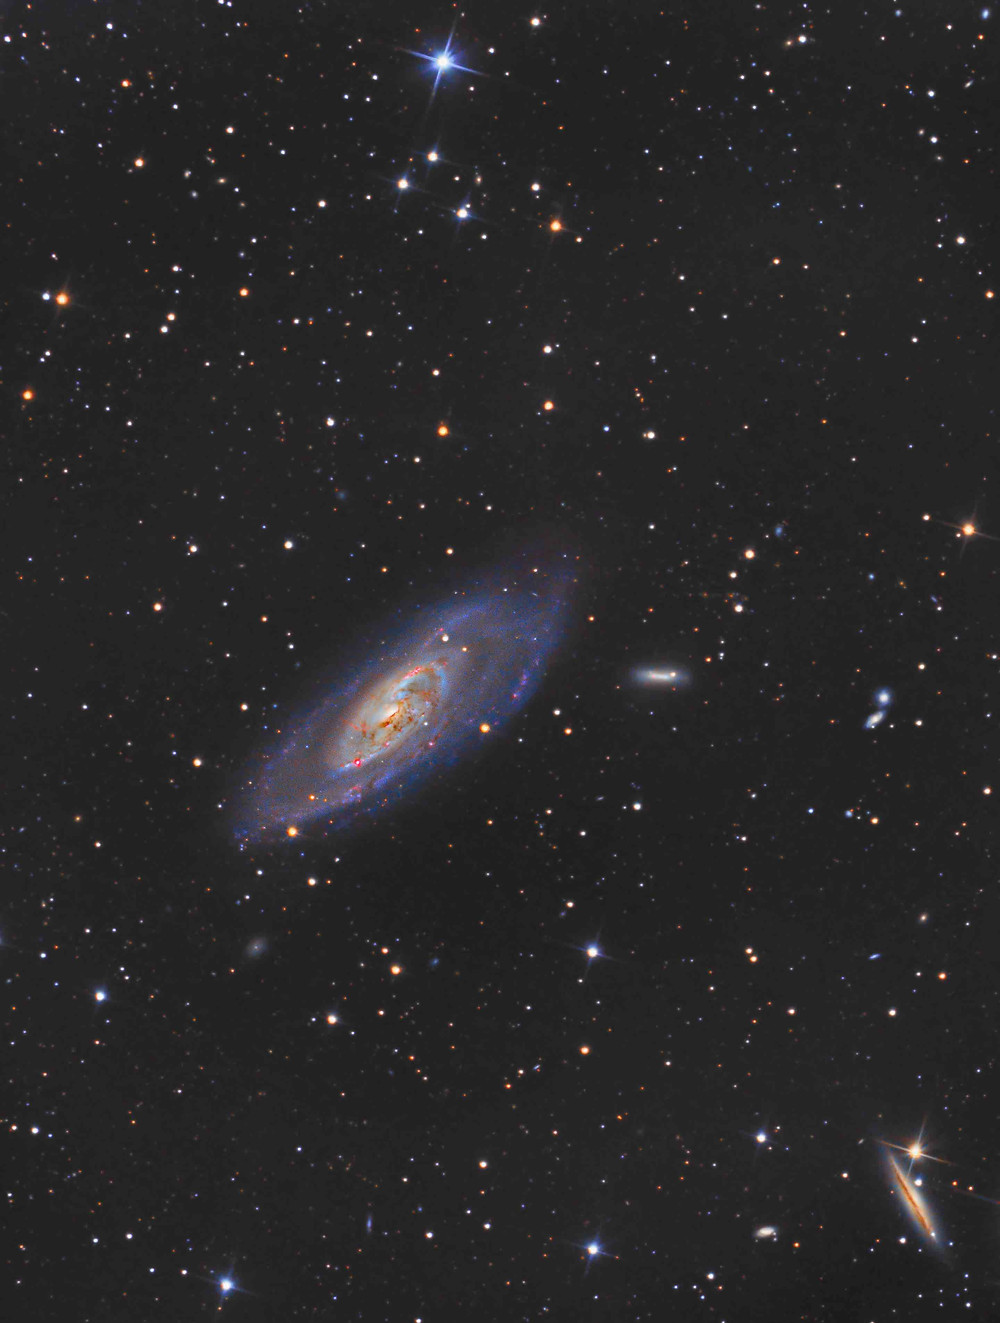 Messier 106 Galaxy ZWO ASI 1600MM Astrophotography CMOS Orion Telescope